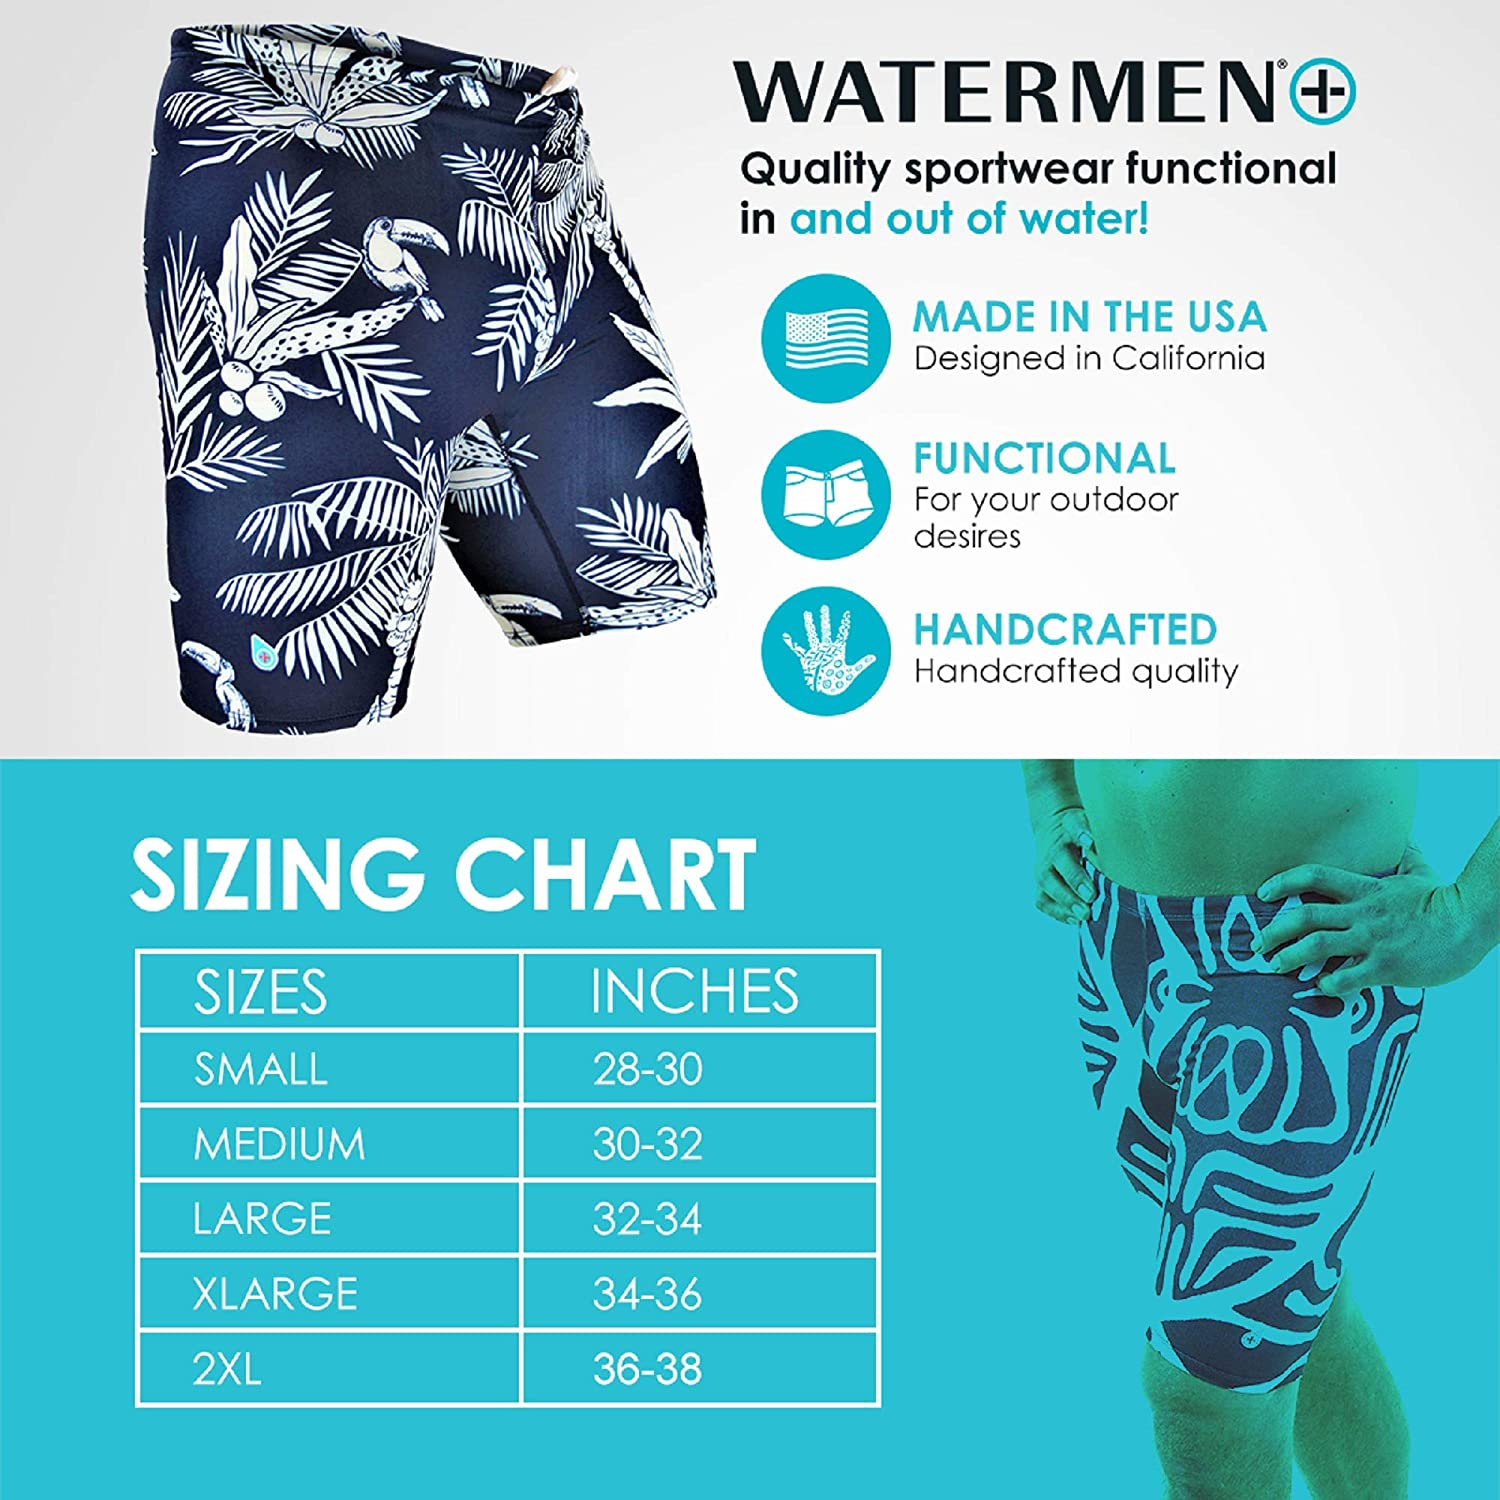 17d98ed594 Amazon.com : Original Watermen Mens Jammers Compression Speed Swimsuit  Liners, Chlorine Resistant, Double Dye Anti Rash Fade Flexible : Clothing